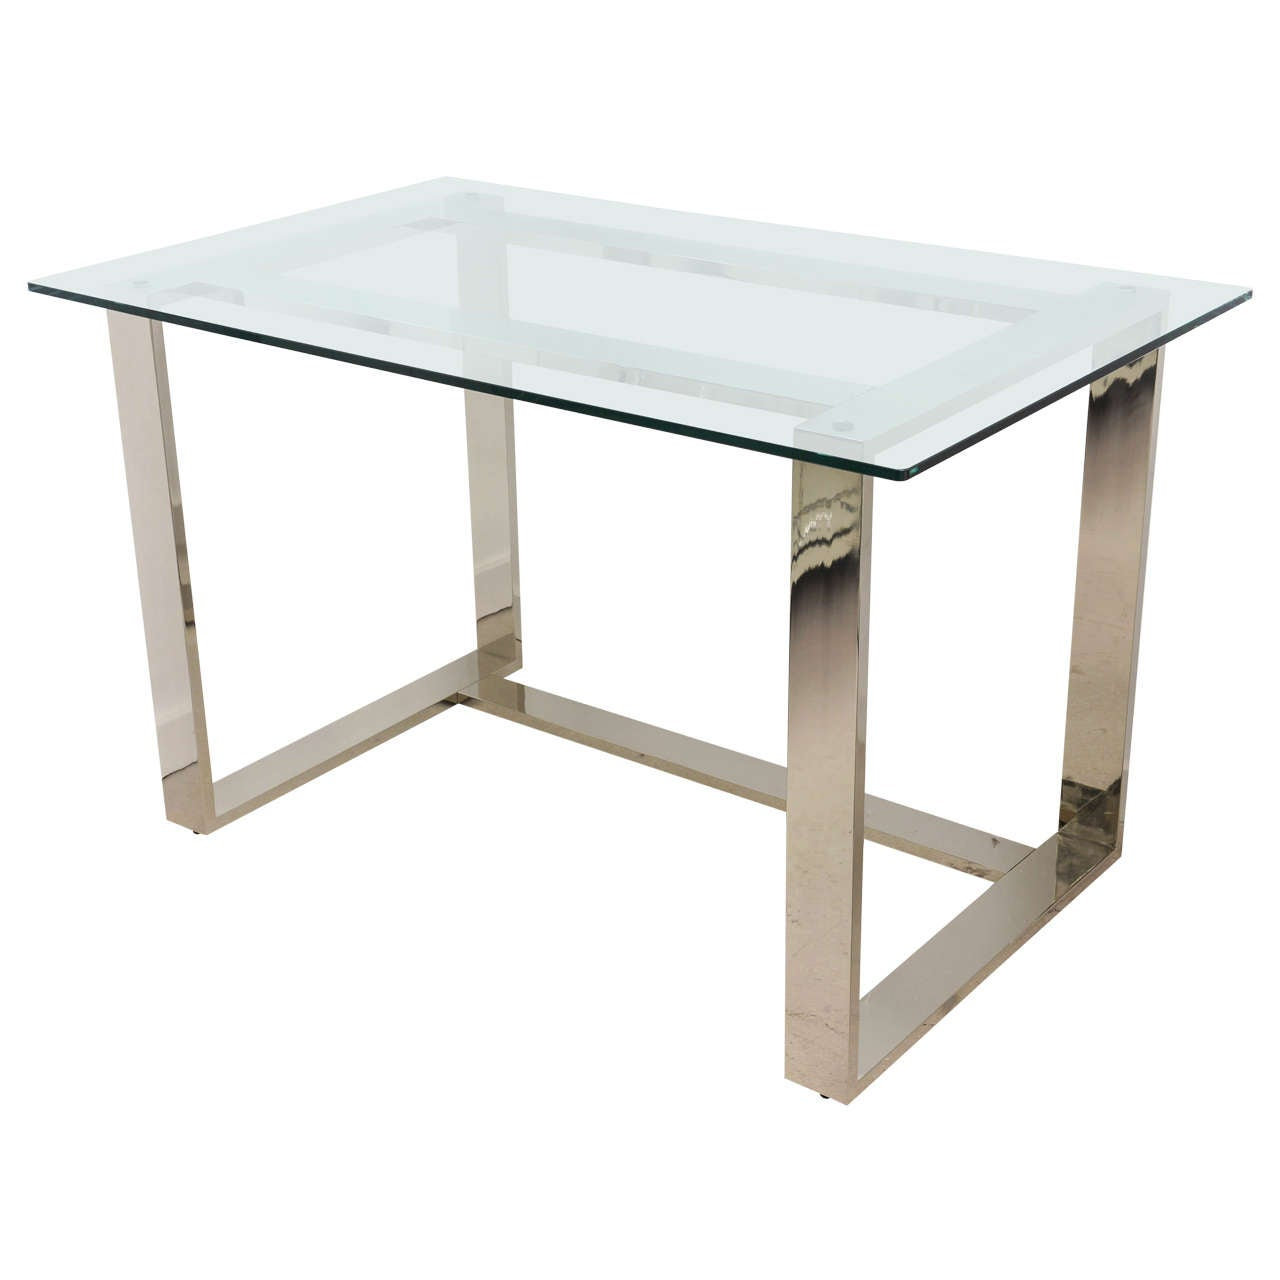 Mid Century Modern Polished Chrome And Glass Desk At 1stdibs